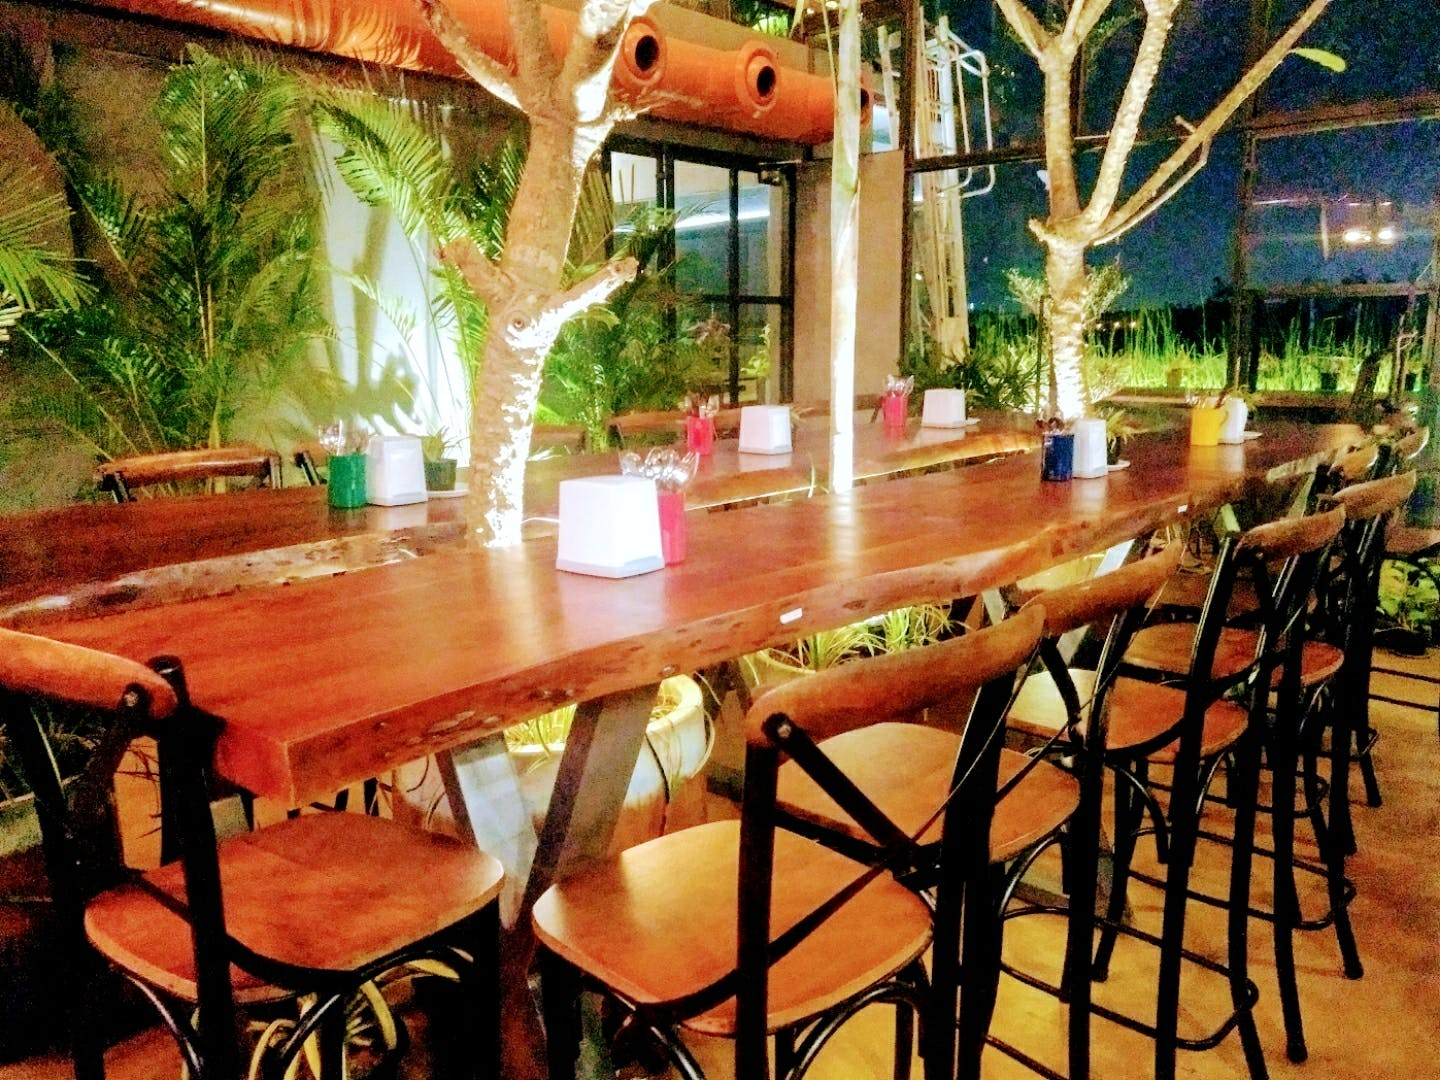 Table,Property,Room,Furniture,Restaurant,Building,Kitchen & dining room table,Café,Interior design,Outdoor table